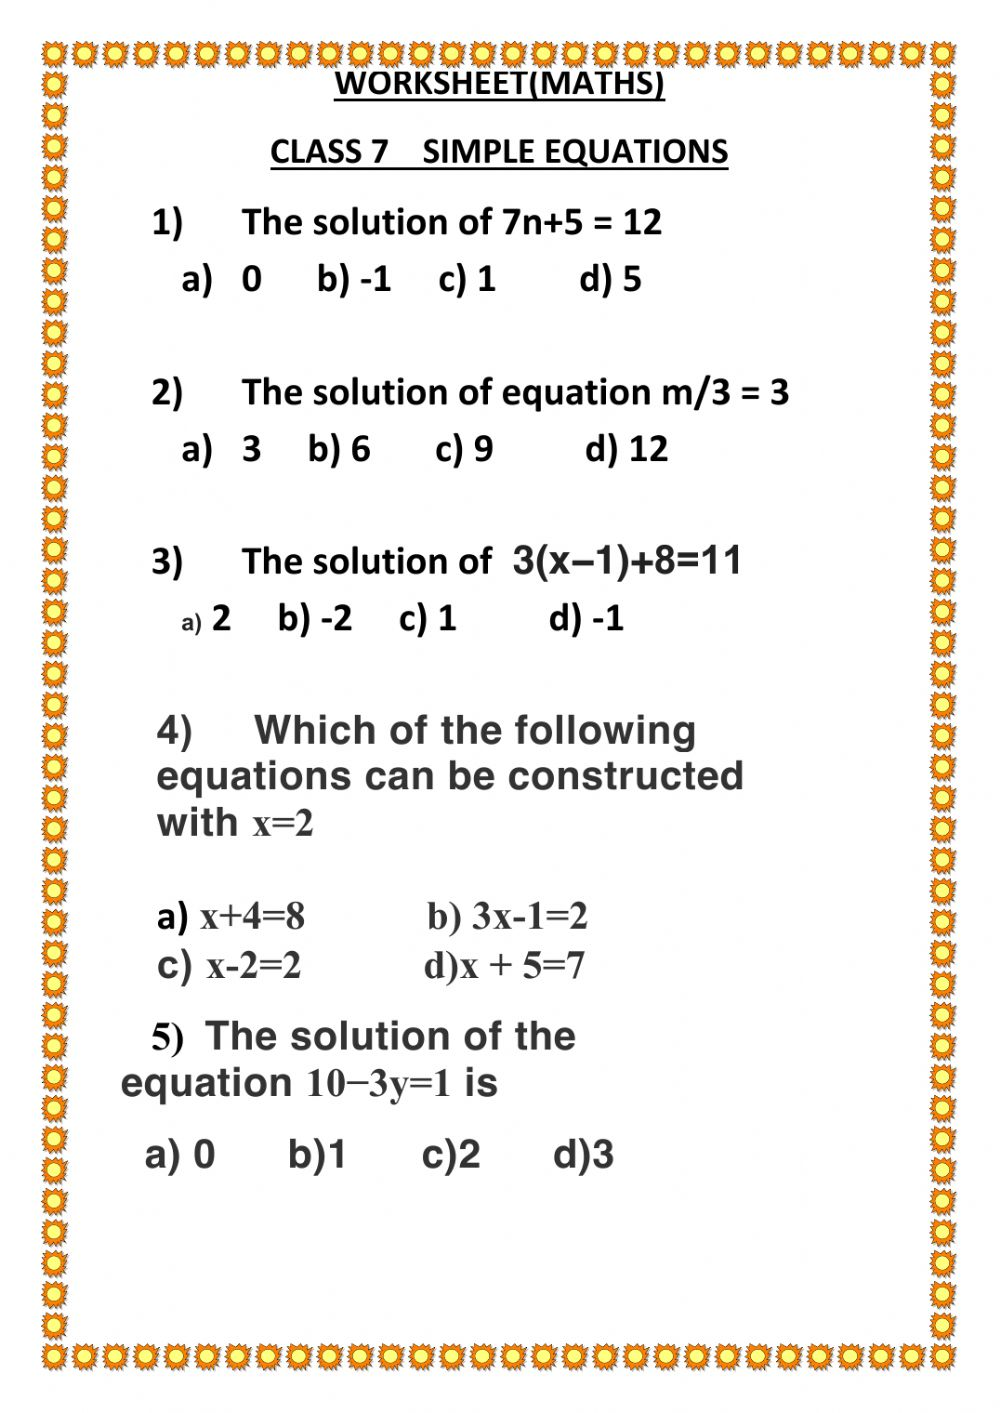 hight resolution of Simple equations worksheet